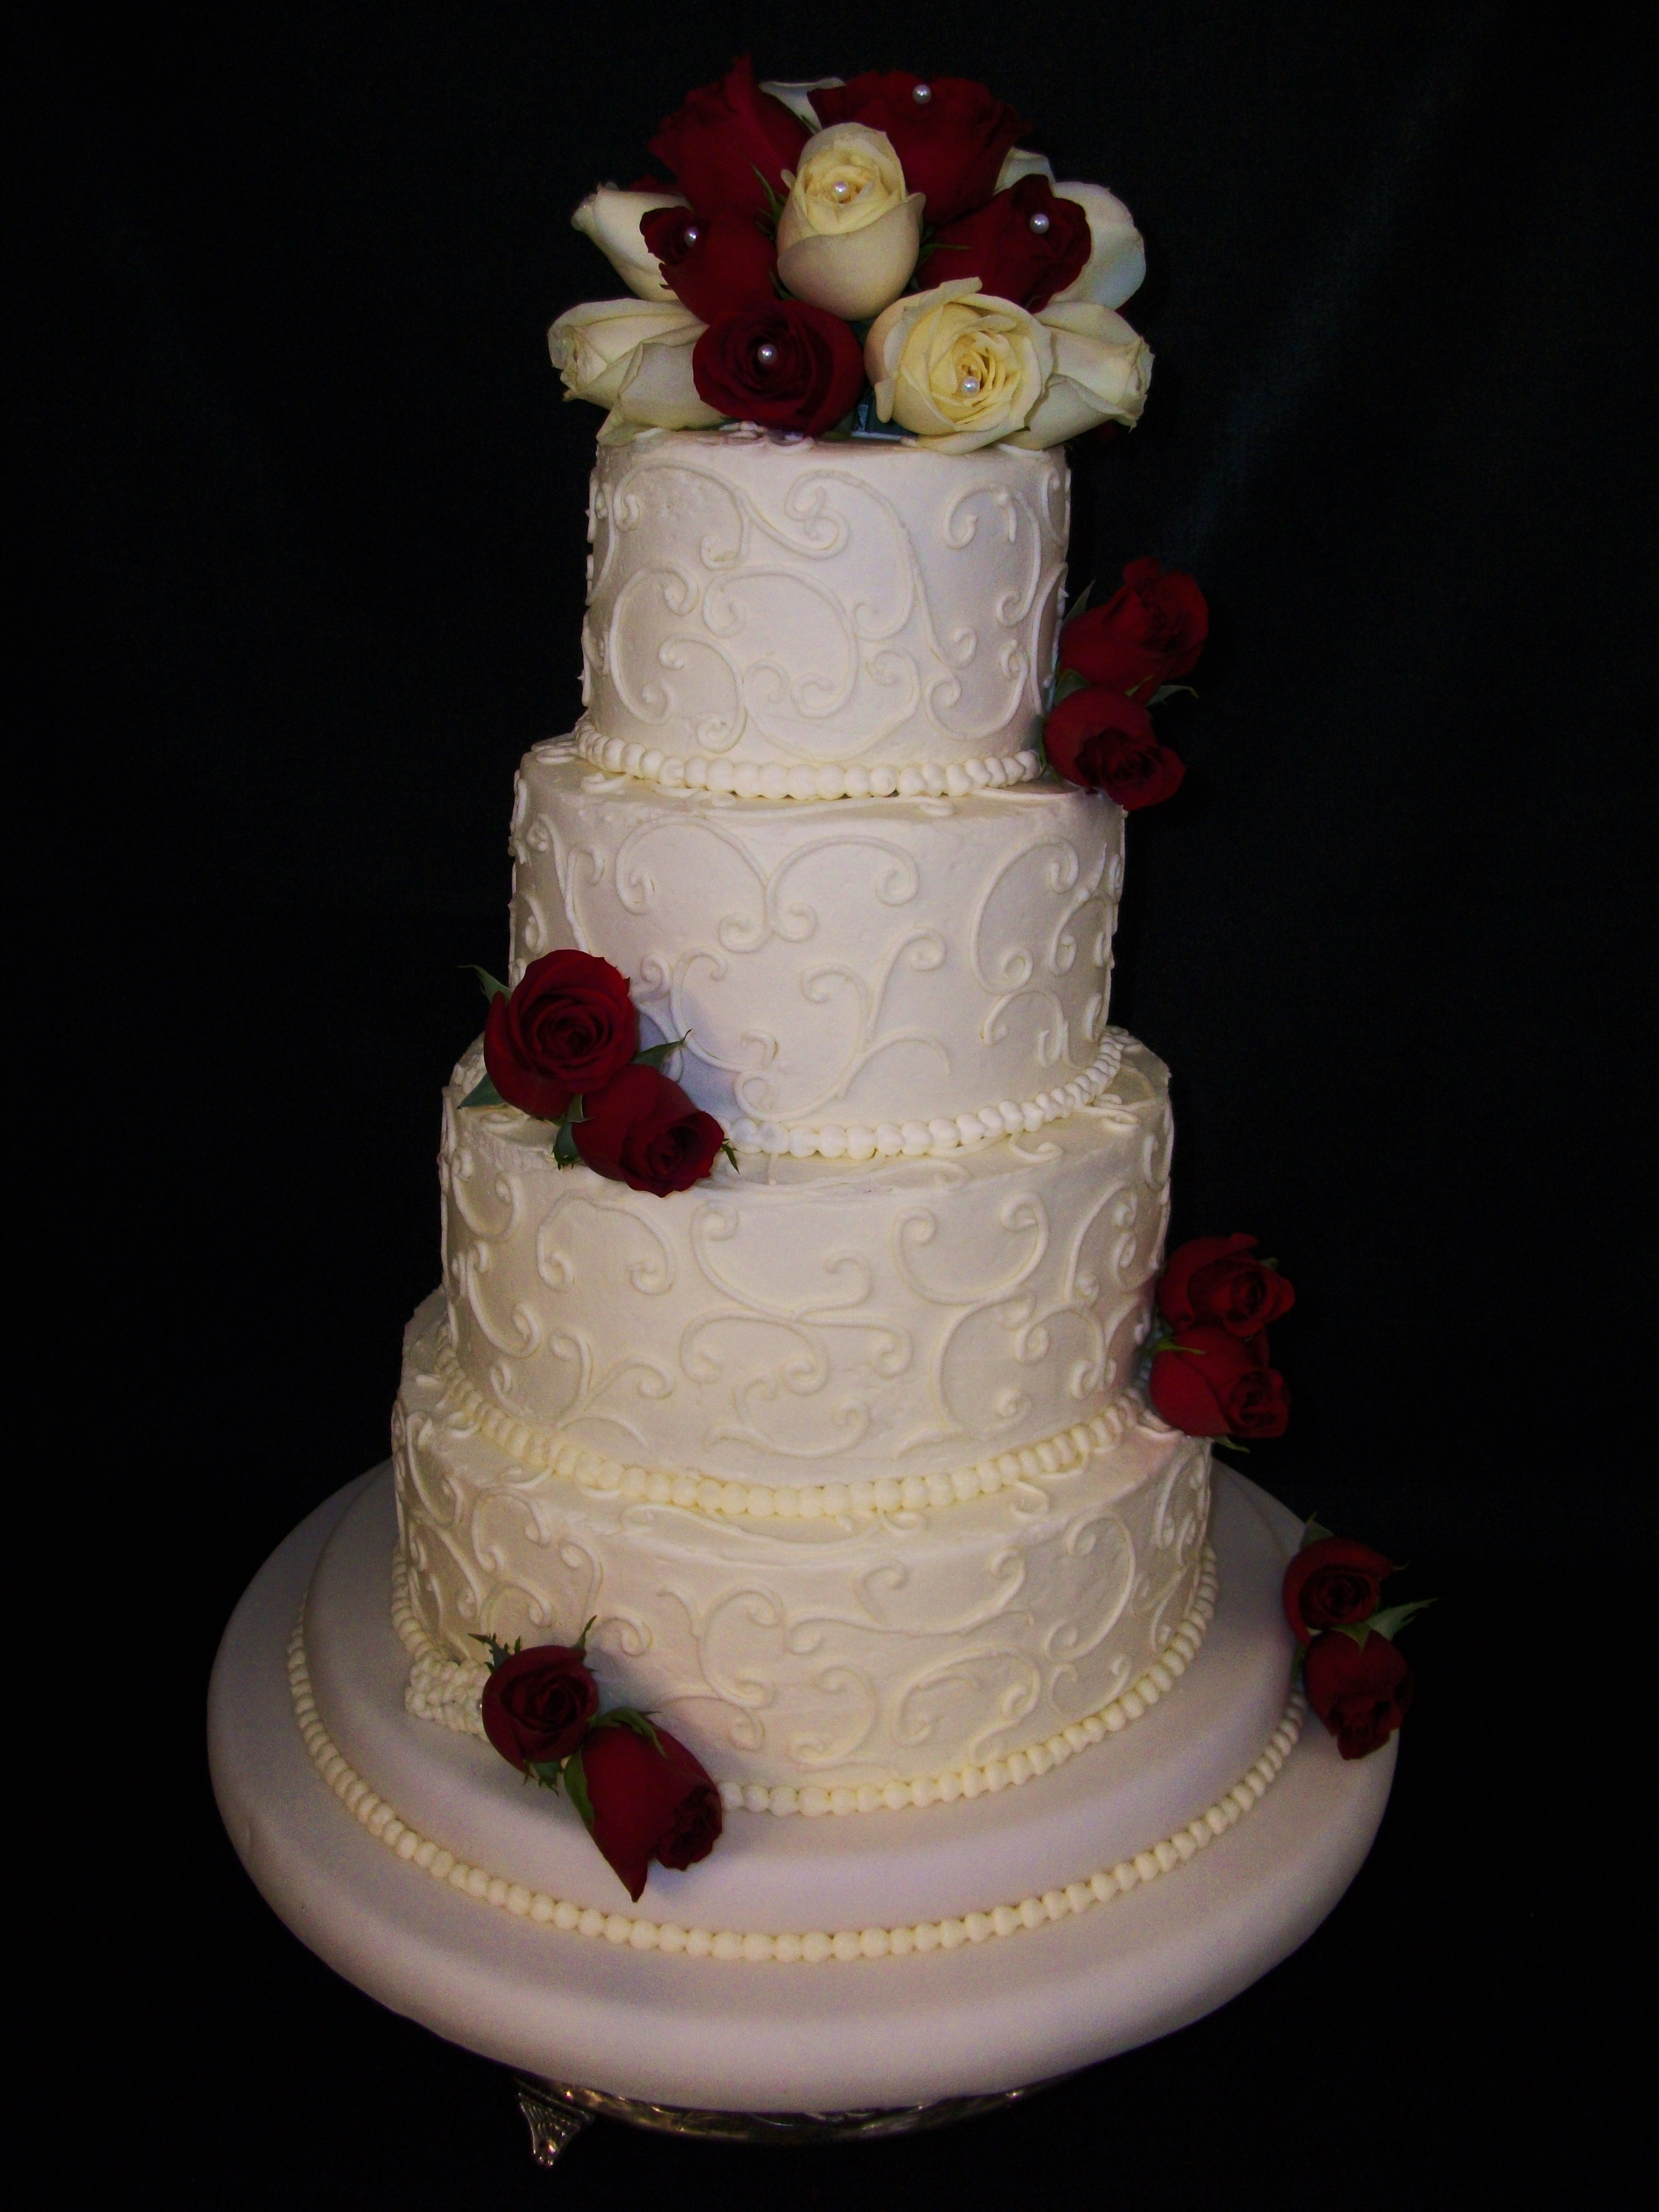 Wedding Cakes 4 Tier  Wedding Cake 4 Tier Buttercream Fresh Red and White Roses